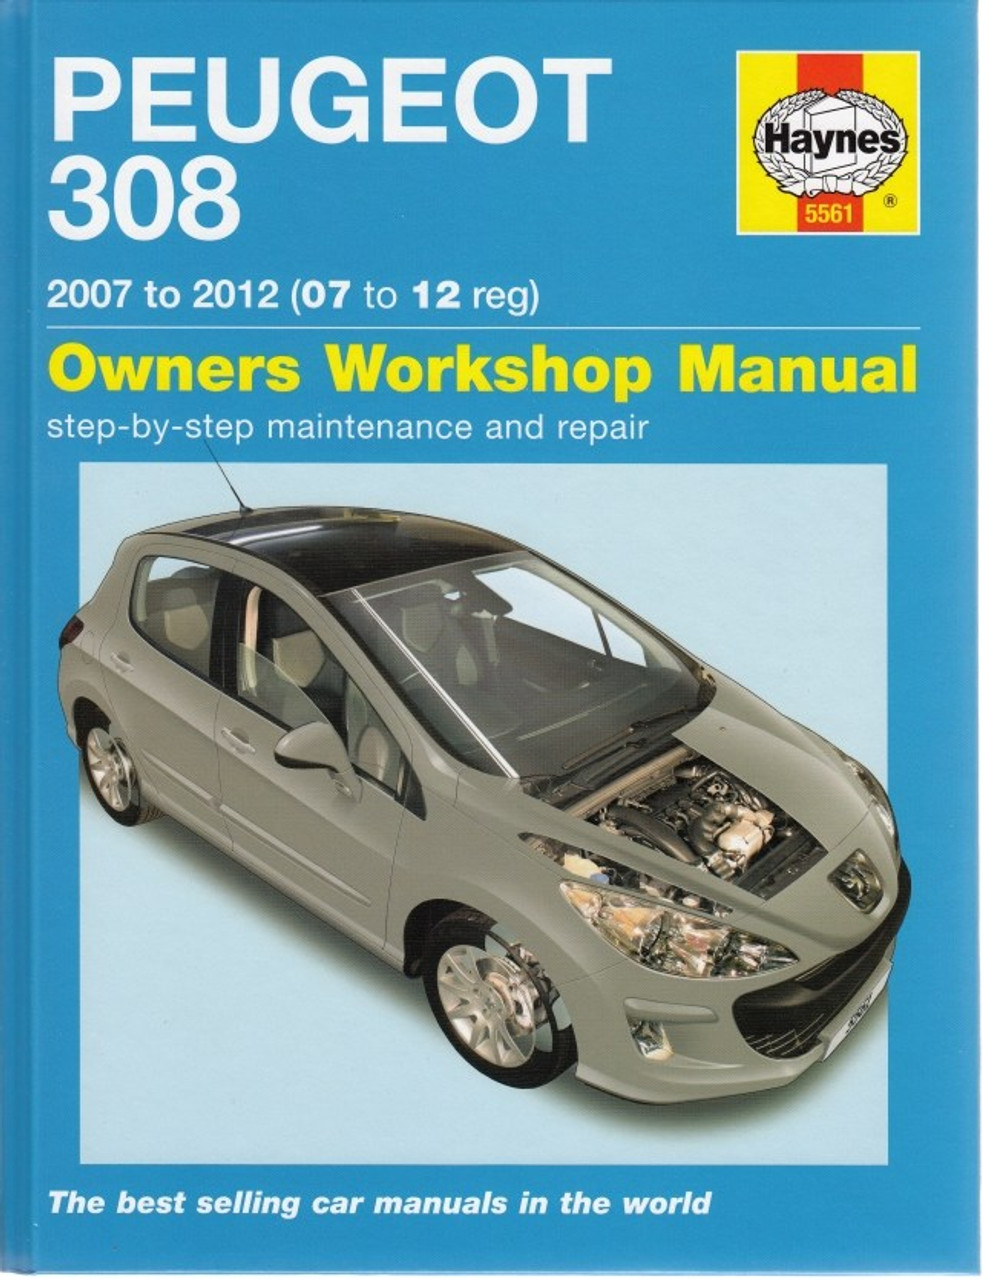 peugeot 308 2007 2012 petrol diesel workshop manual rh automotobookshop com au 2007 Ford Focus Service Book 2007 Ford Focus Interior